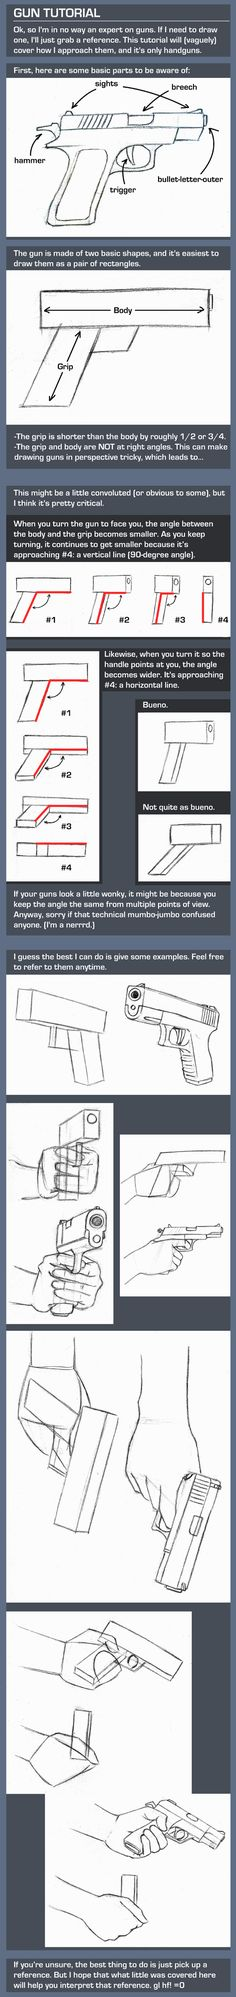 Gun 'Tutorial' by TheAmoebic on DeviantArt